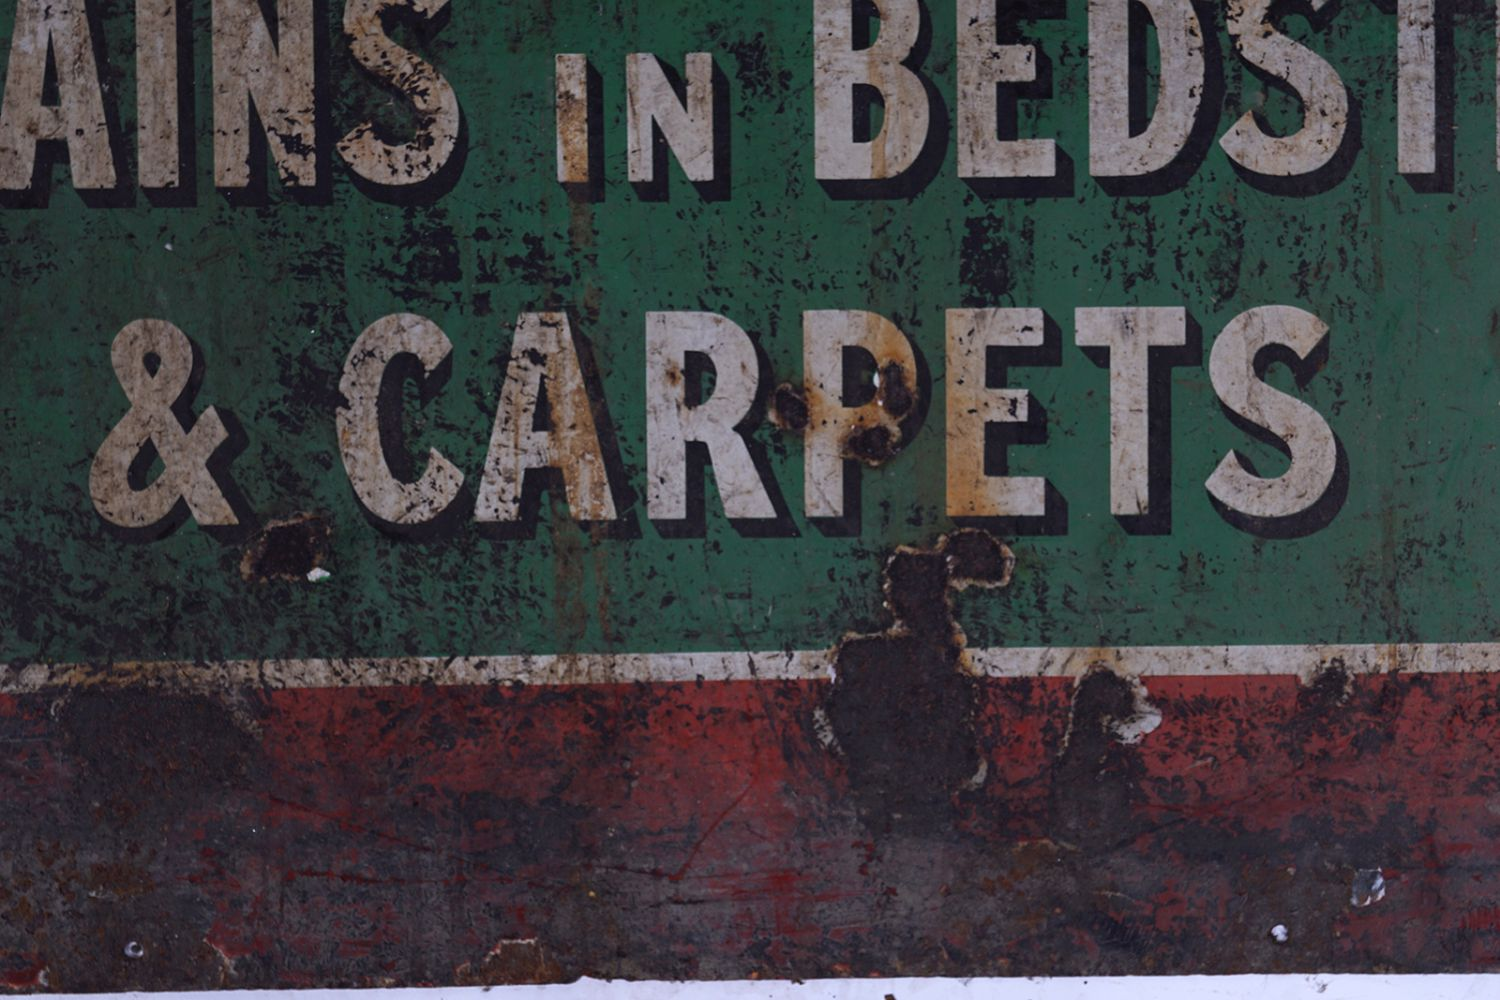 HEARNE & CO WATERFORD LTD. SIGN - Image 3 of 3